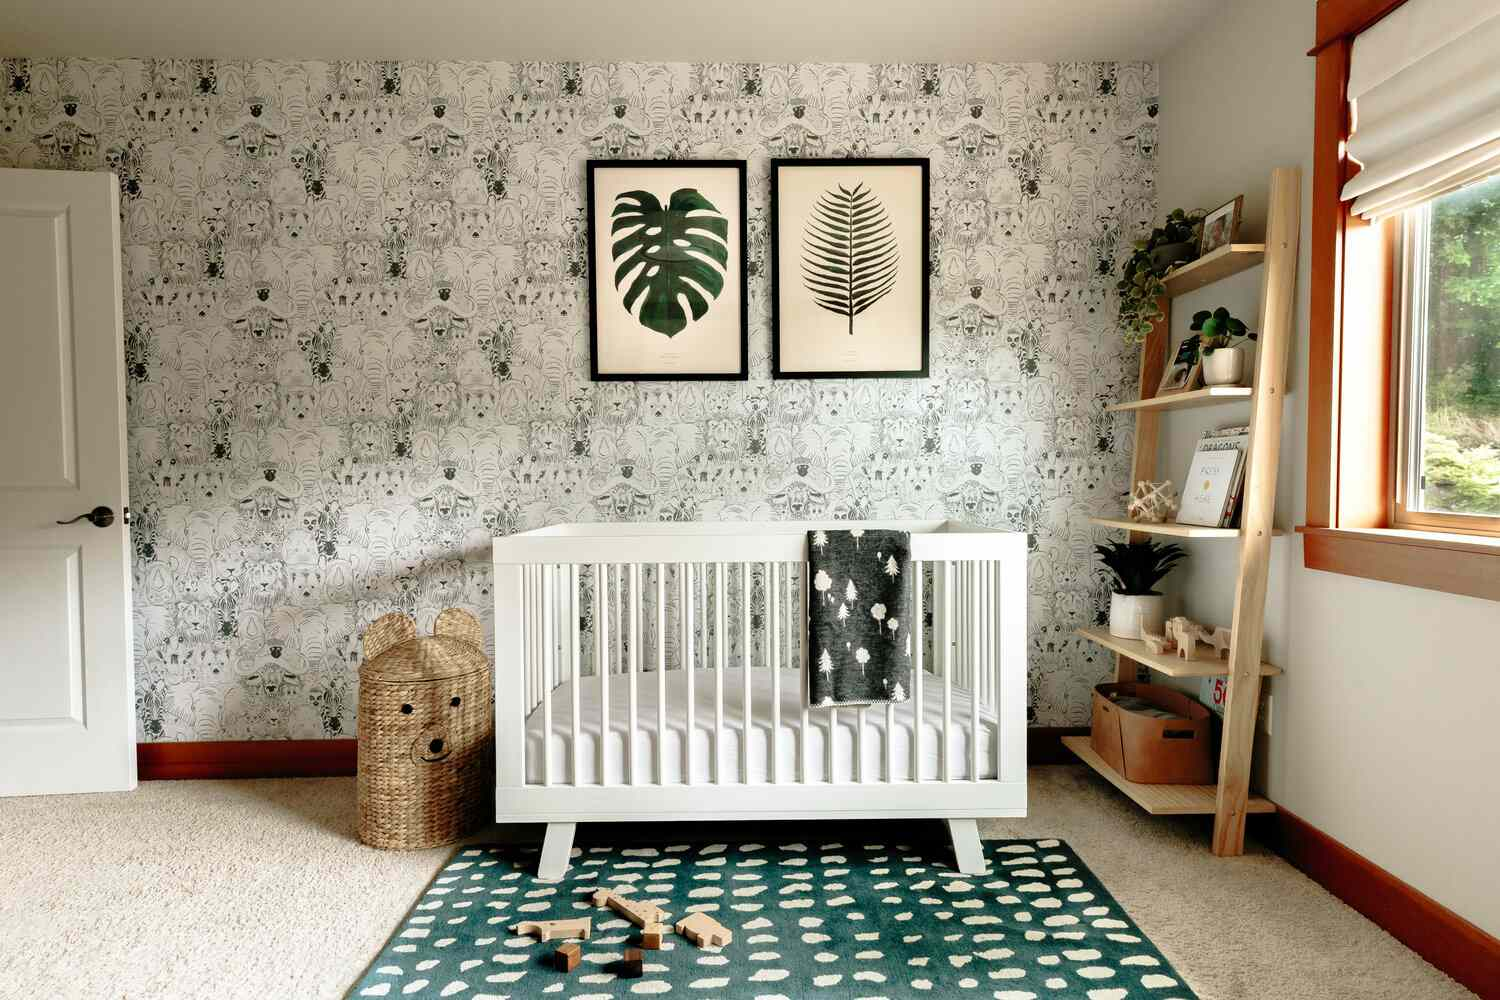 white crib in room with pattern wallpaper, leaf artwork on wall